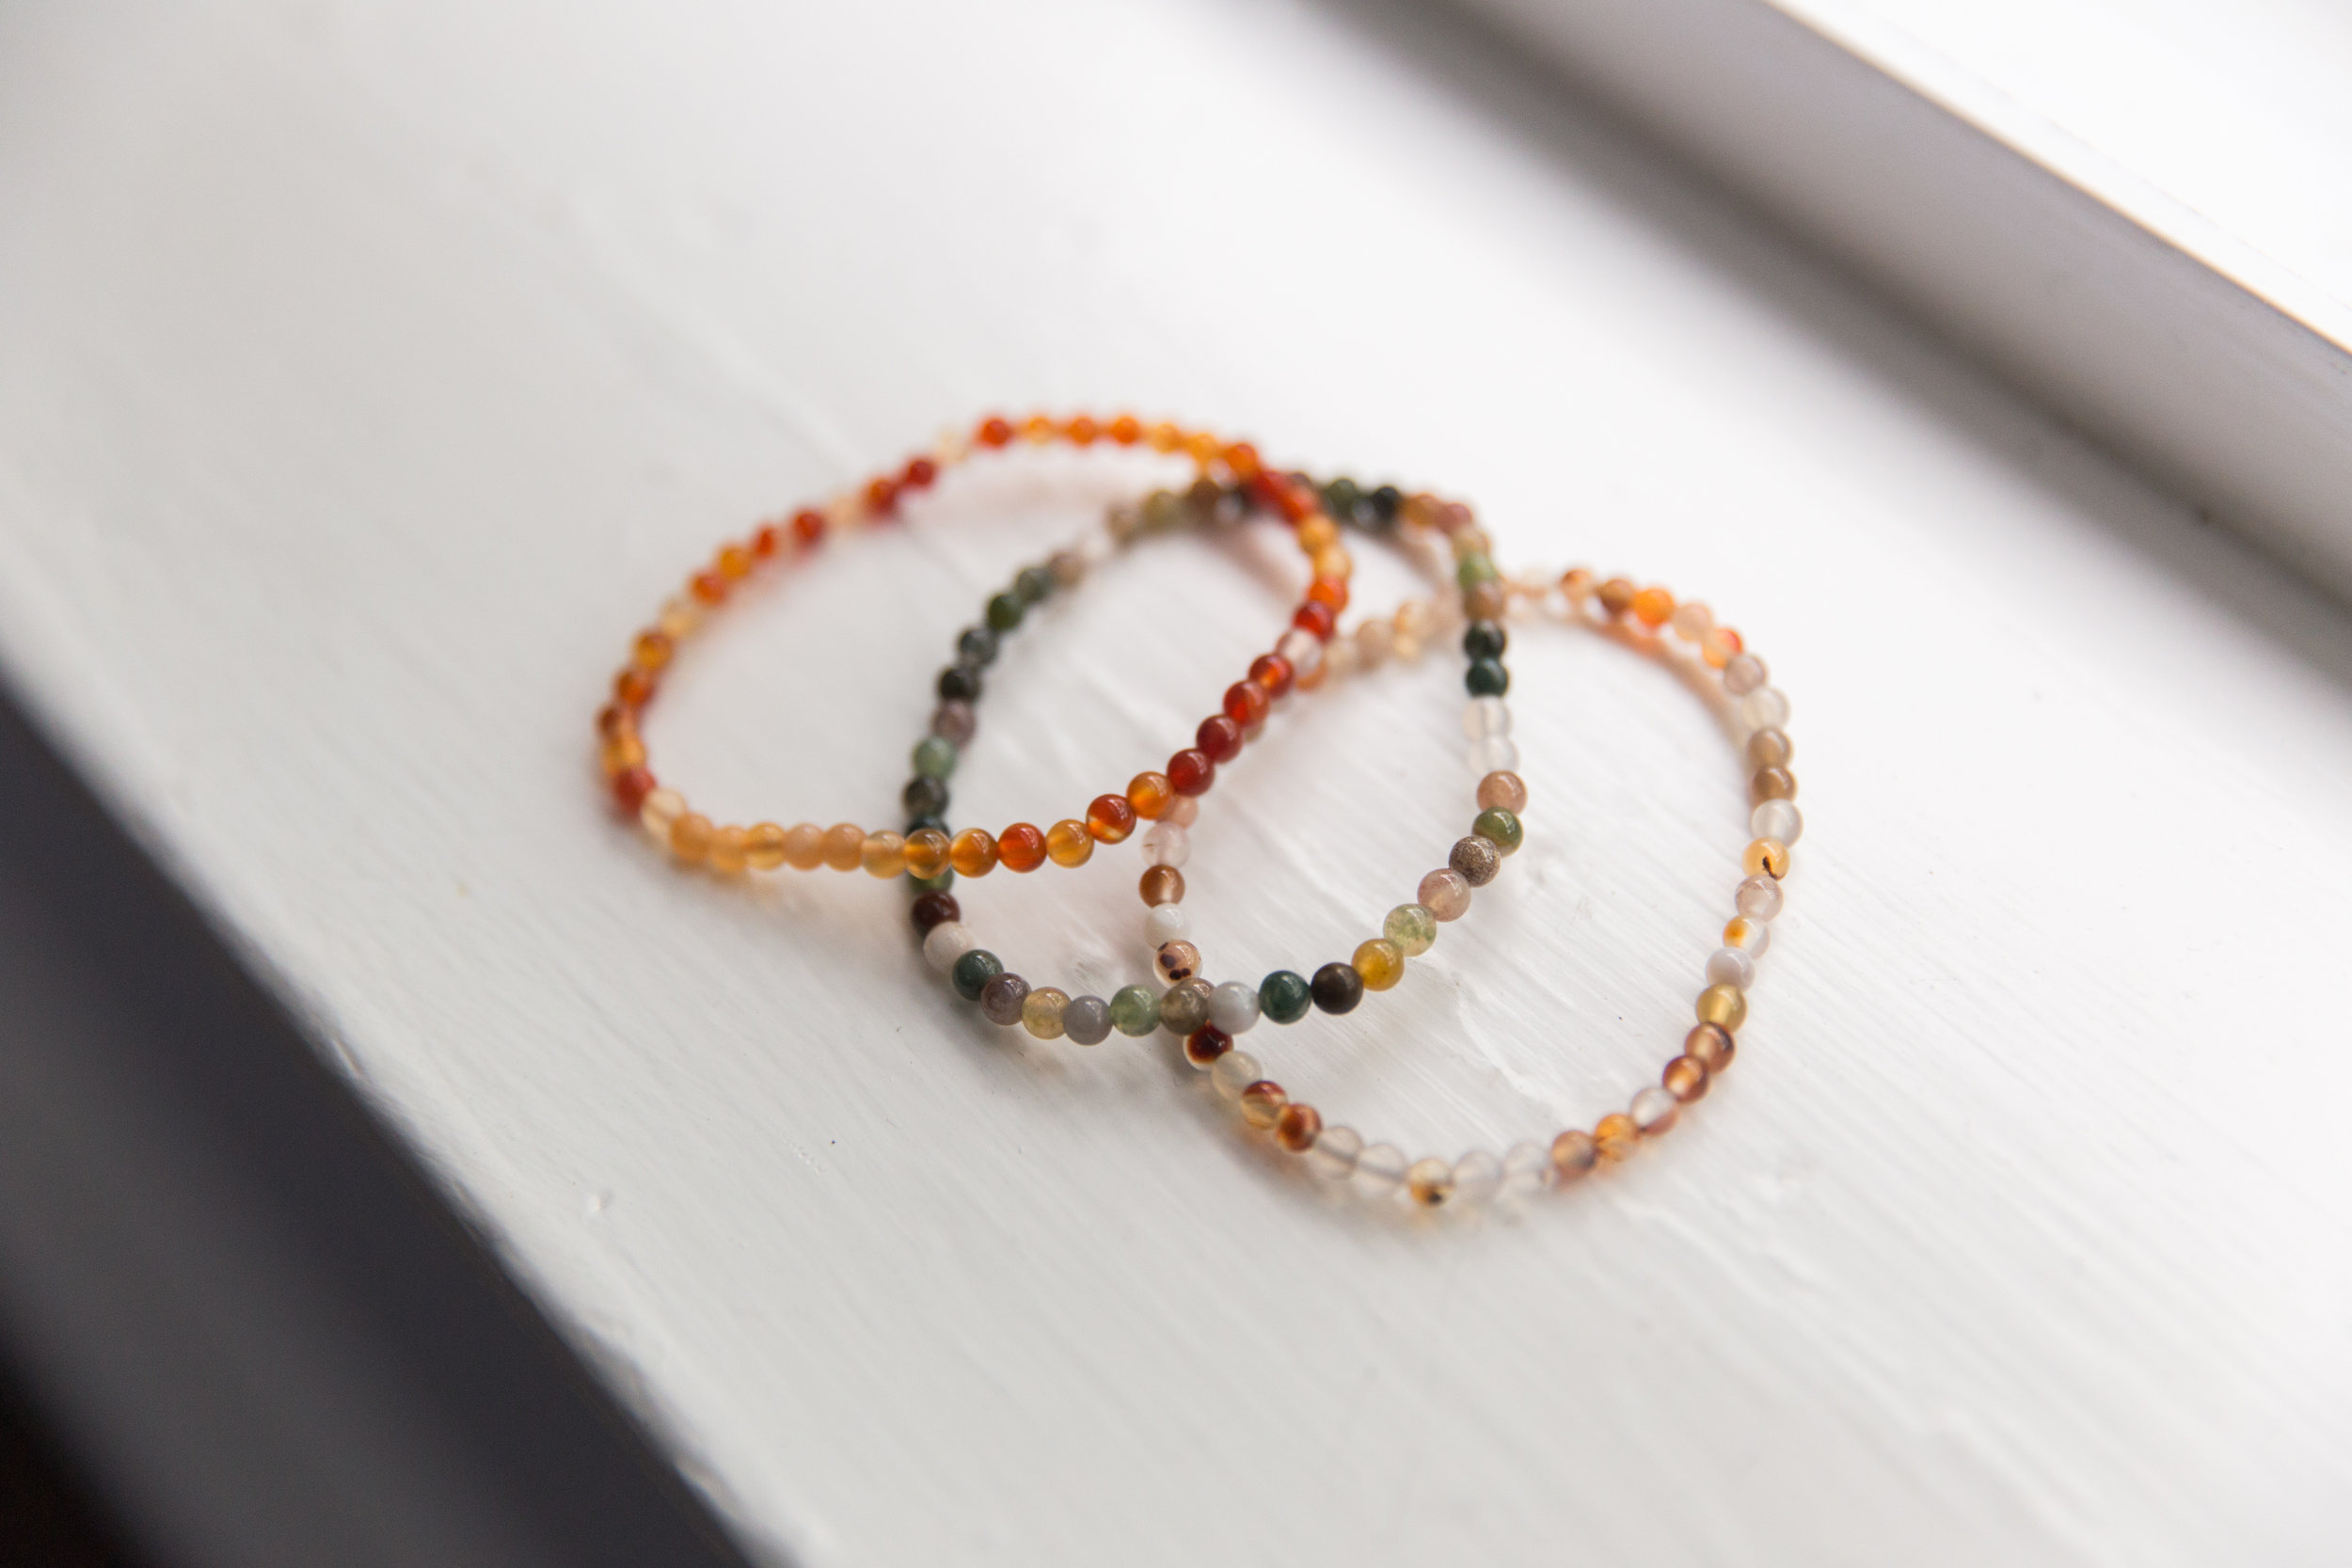 Milk and Honey Bracelets, $8   Beautiful bracelets with healing stones made by local company  Milk and Honey .